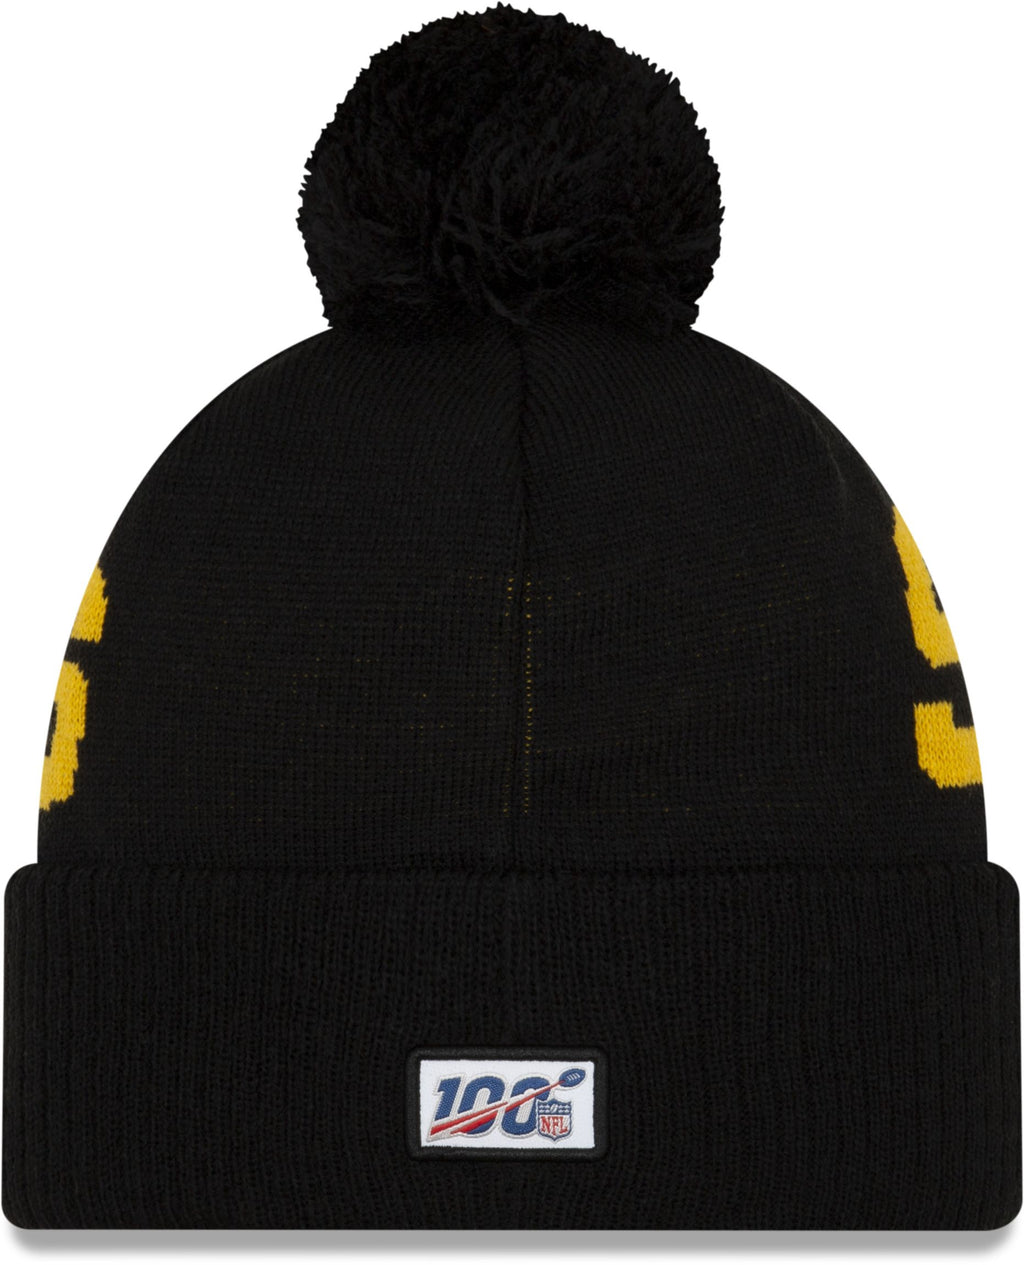 New Era ONF19 Cold Weather Pittsburgh Steelers Bobble Beanie Hat Black